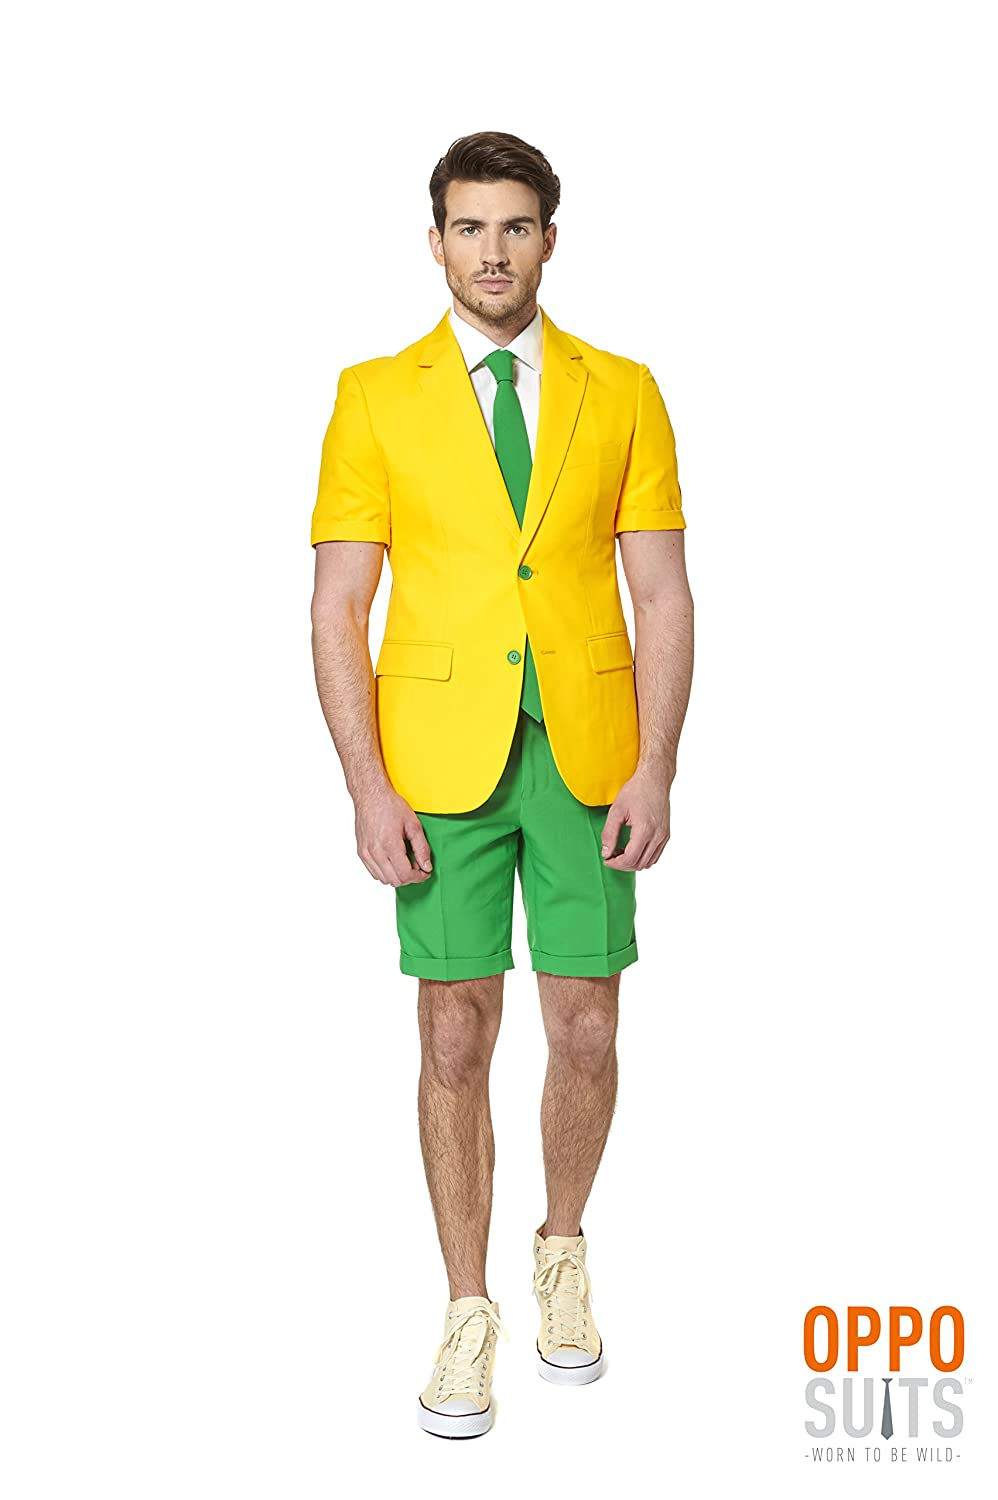 Generique - Opposuits Opposuits Opposuits Sommeranzug Grün and Gold S (46) be61ac